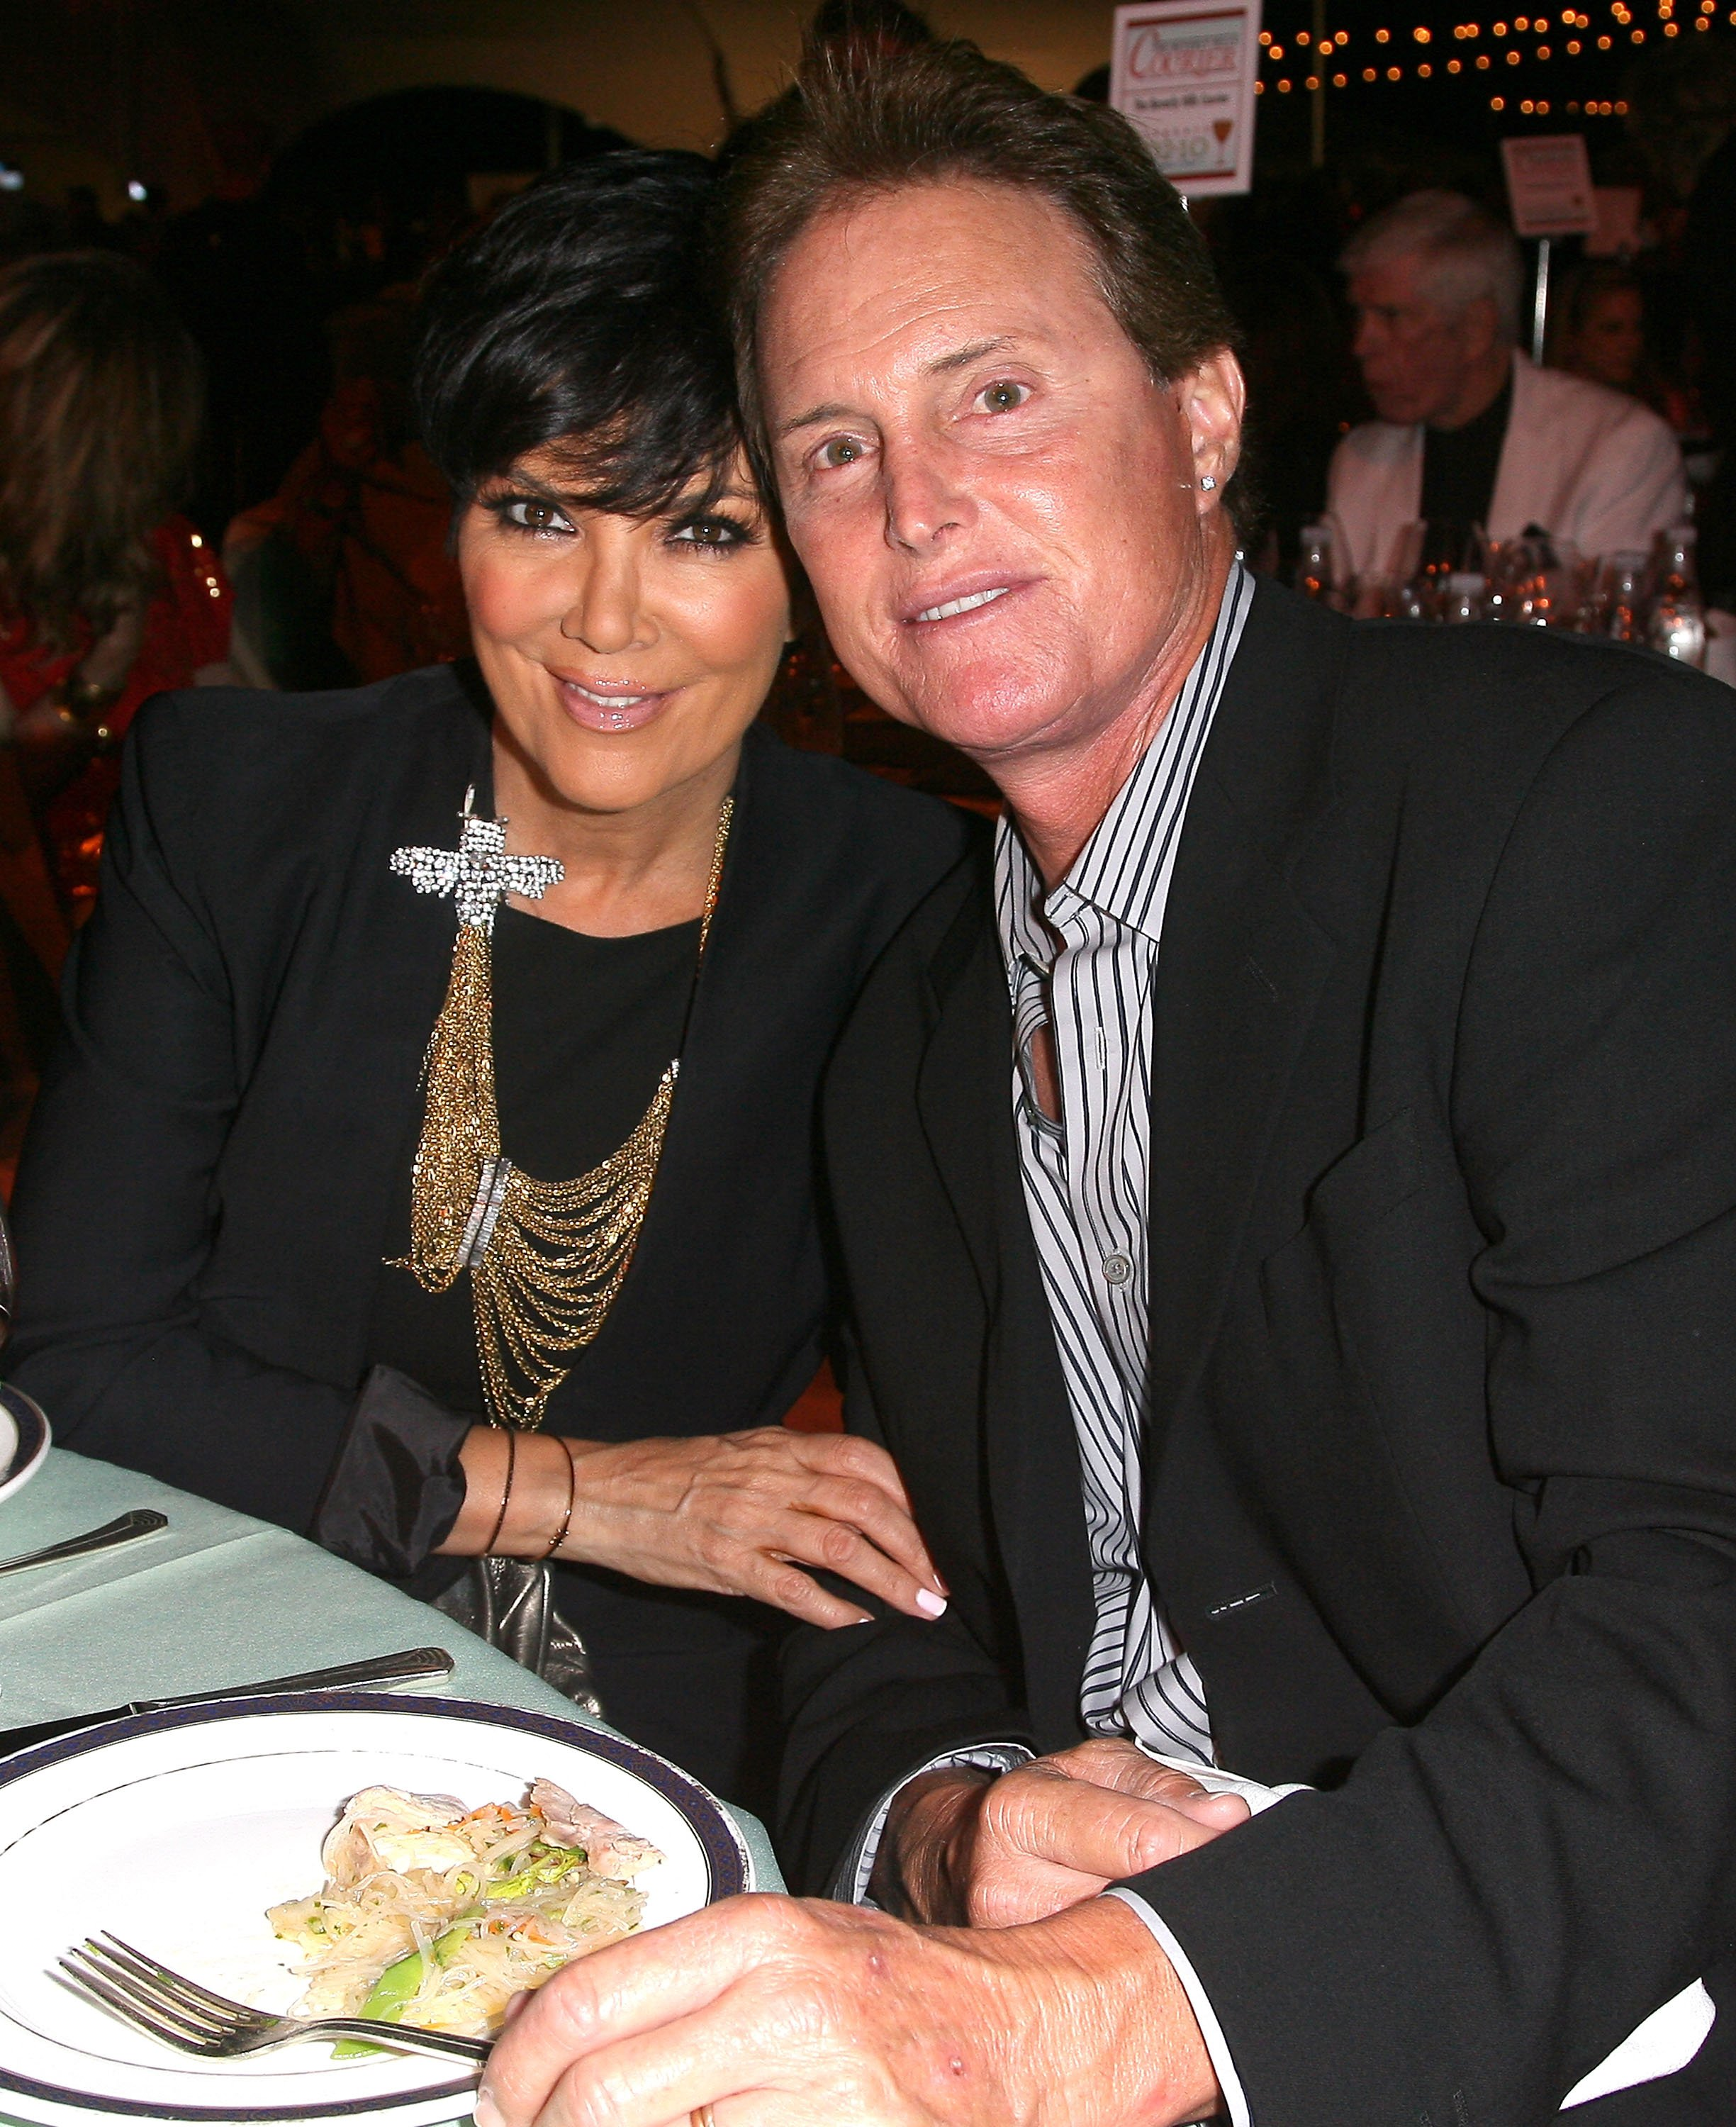 Kris Jenner and Bruce Jenner attend the Taste Of Beverly Hills Wine & Food Festival Opening Night on September 2, 2010, in Beverly Hills, California. | Source: Getty Images.